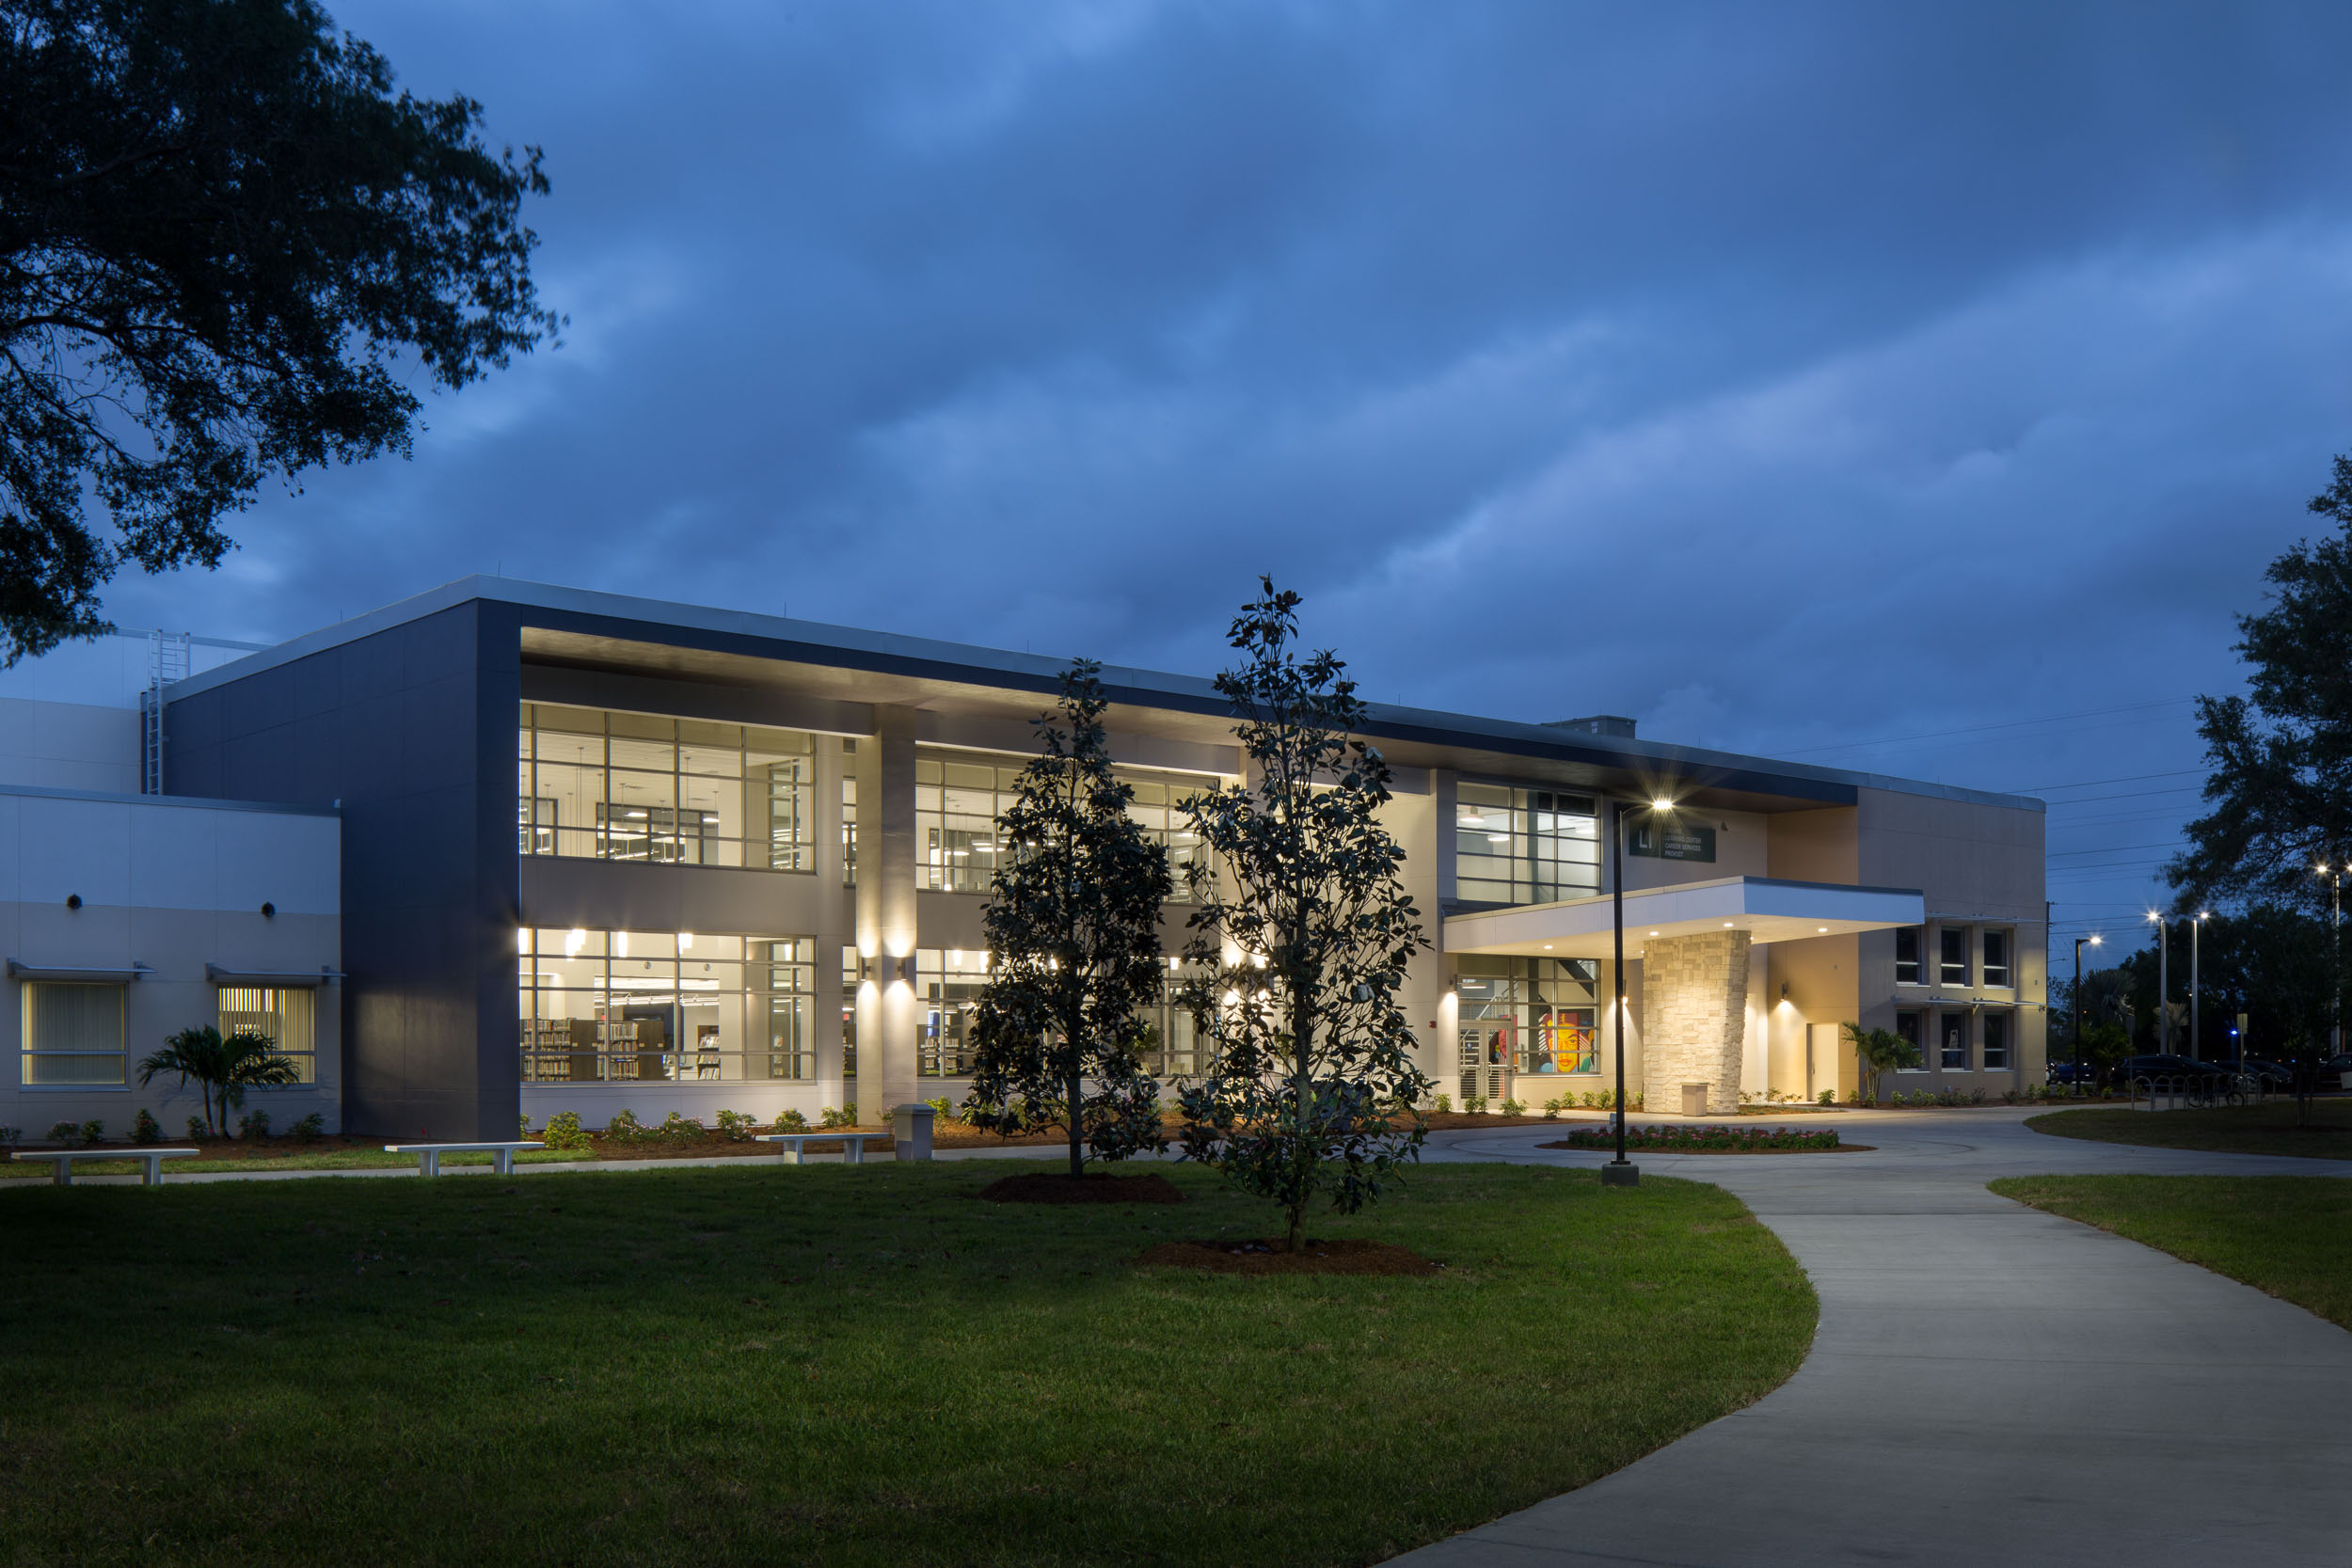 Clearwater Community Library - Javier Garcia Architectural Photographer